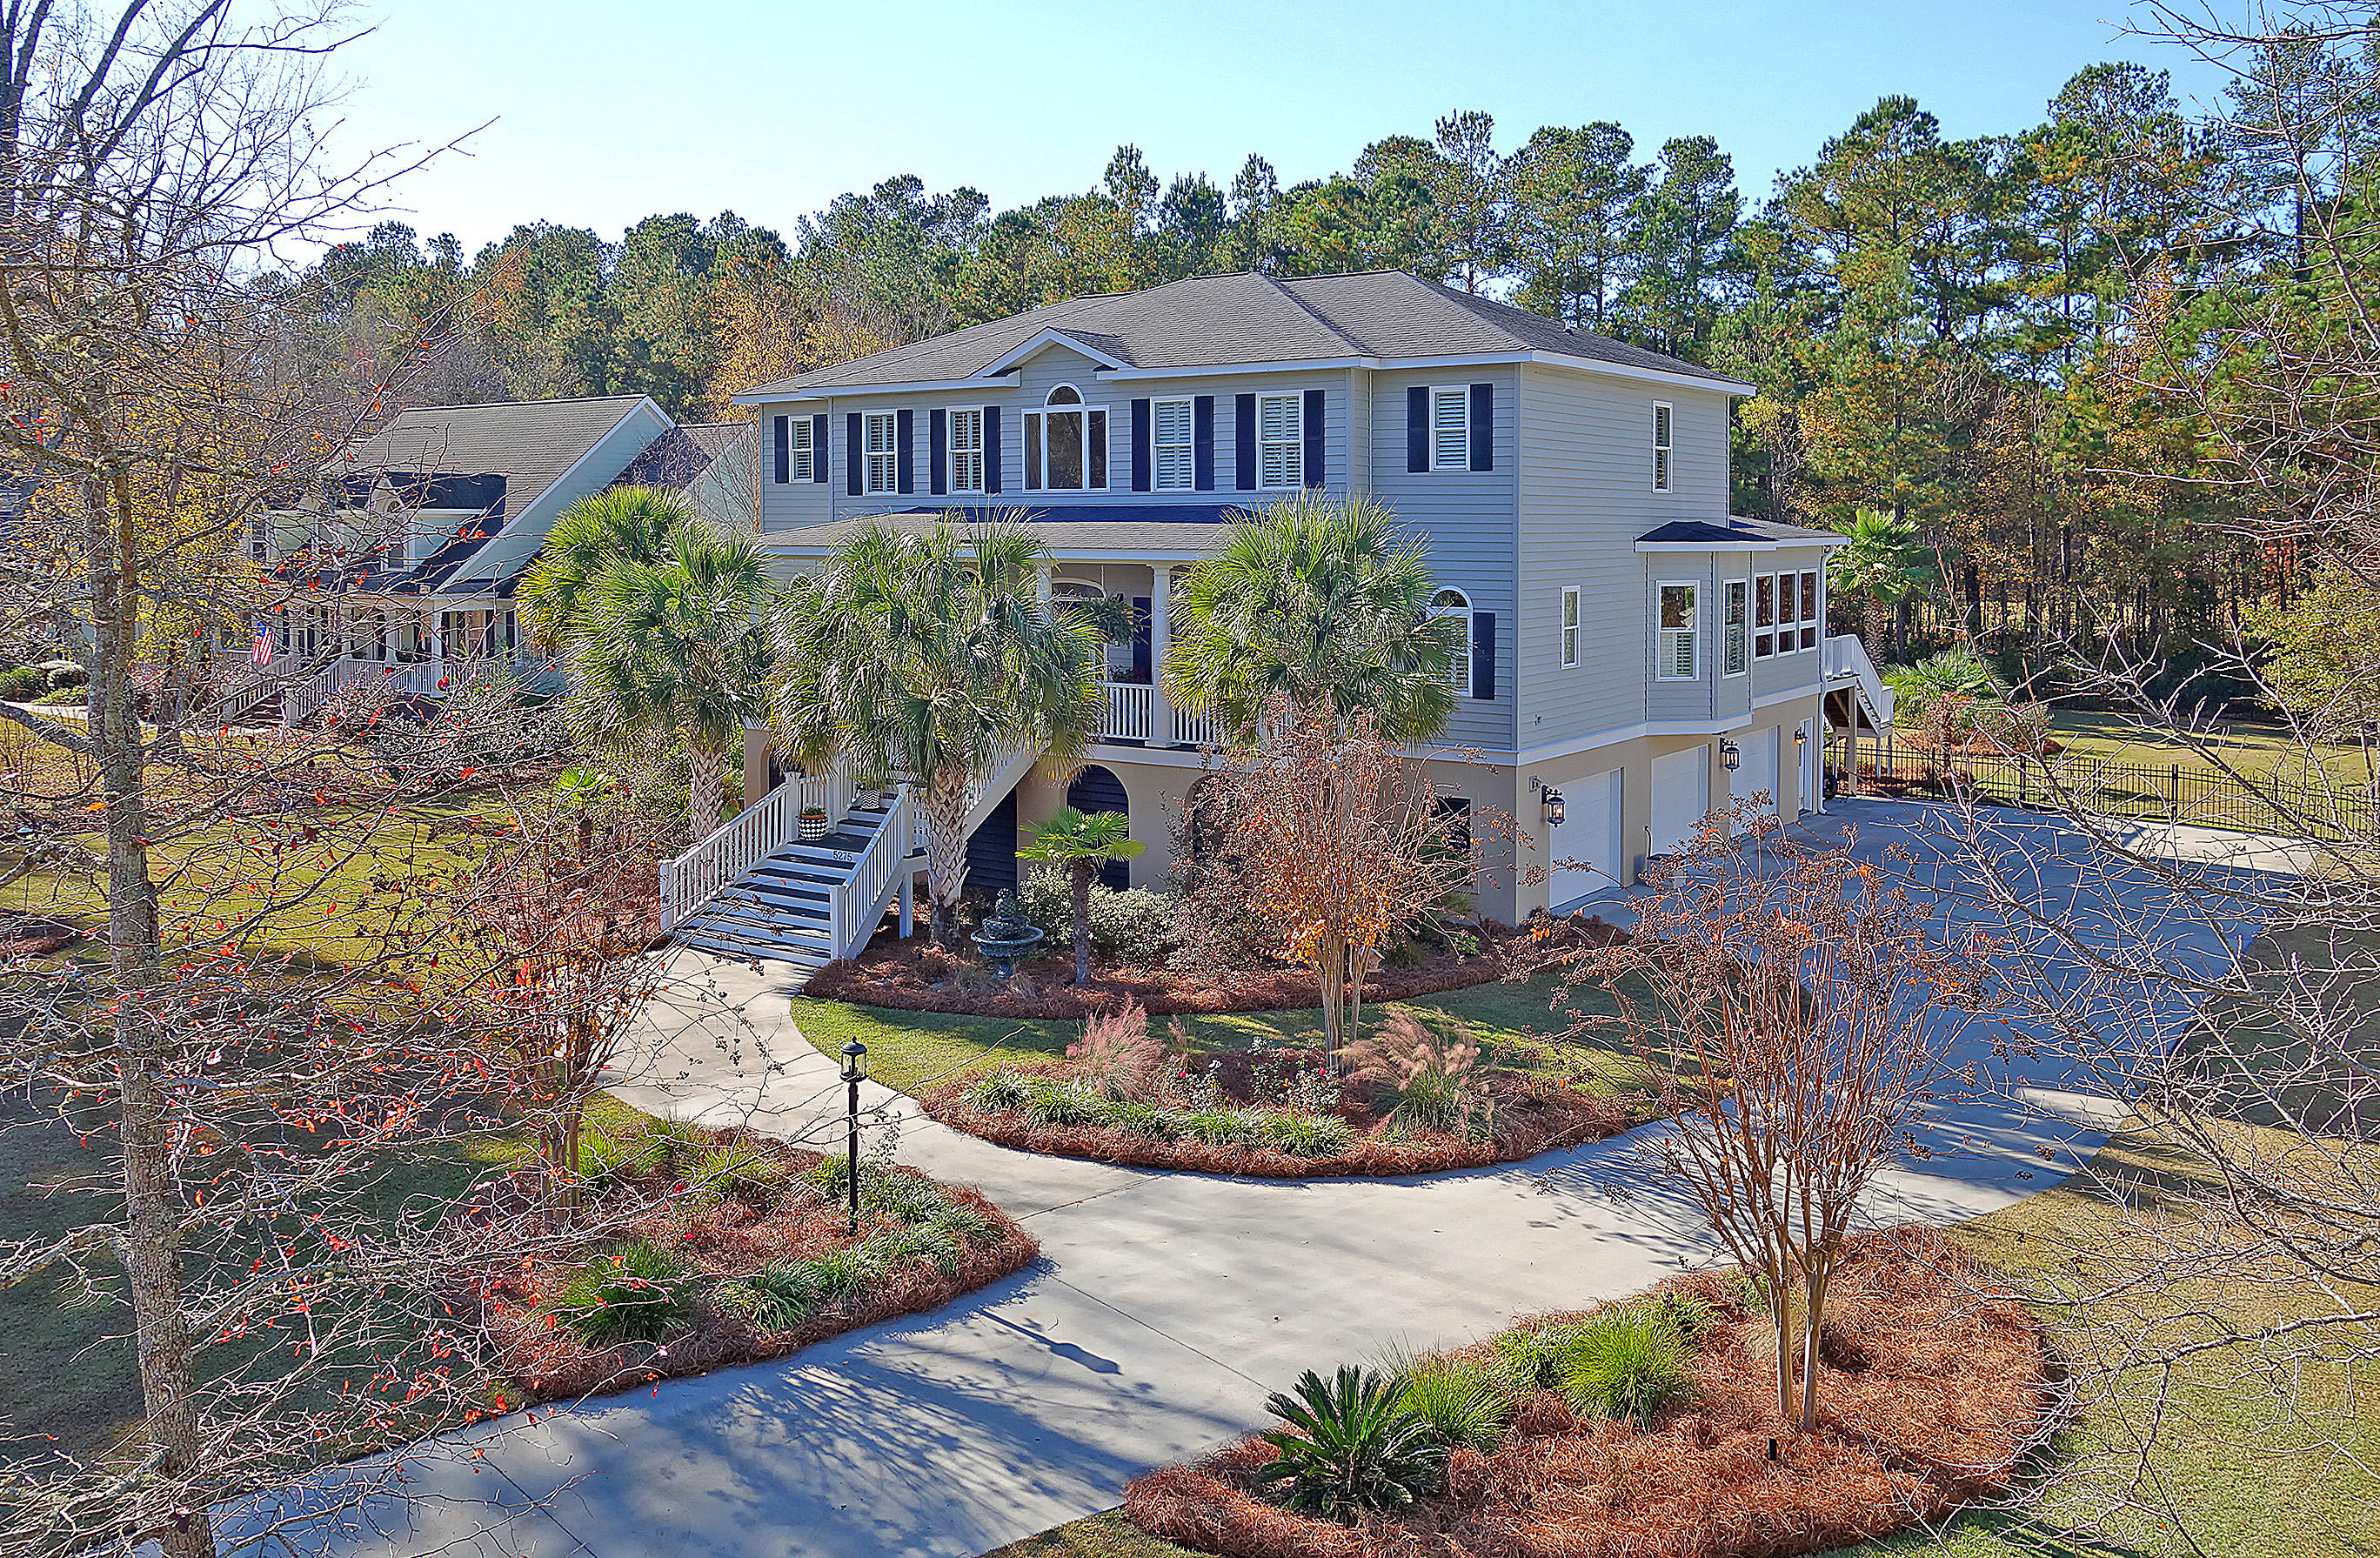 Photo of 5275 Alpine Rd, Summerville, SC 29483